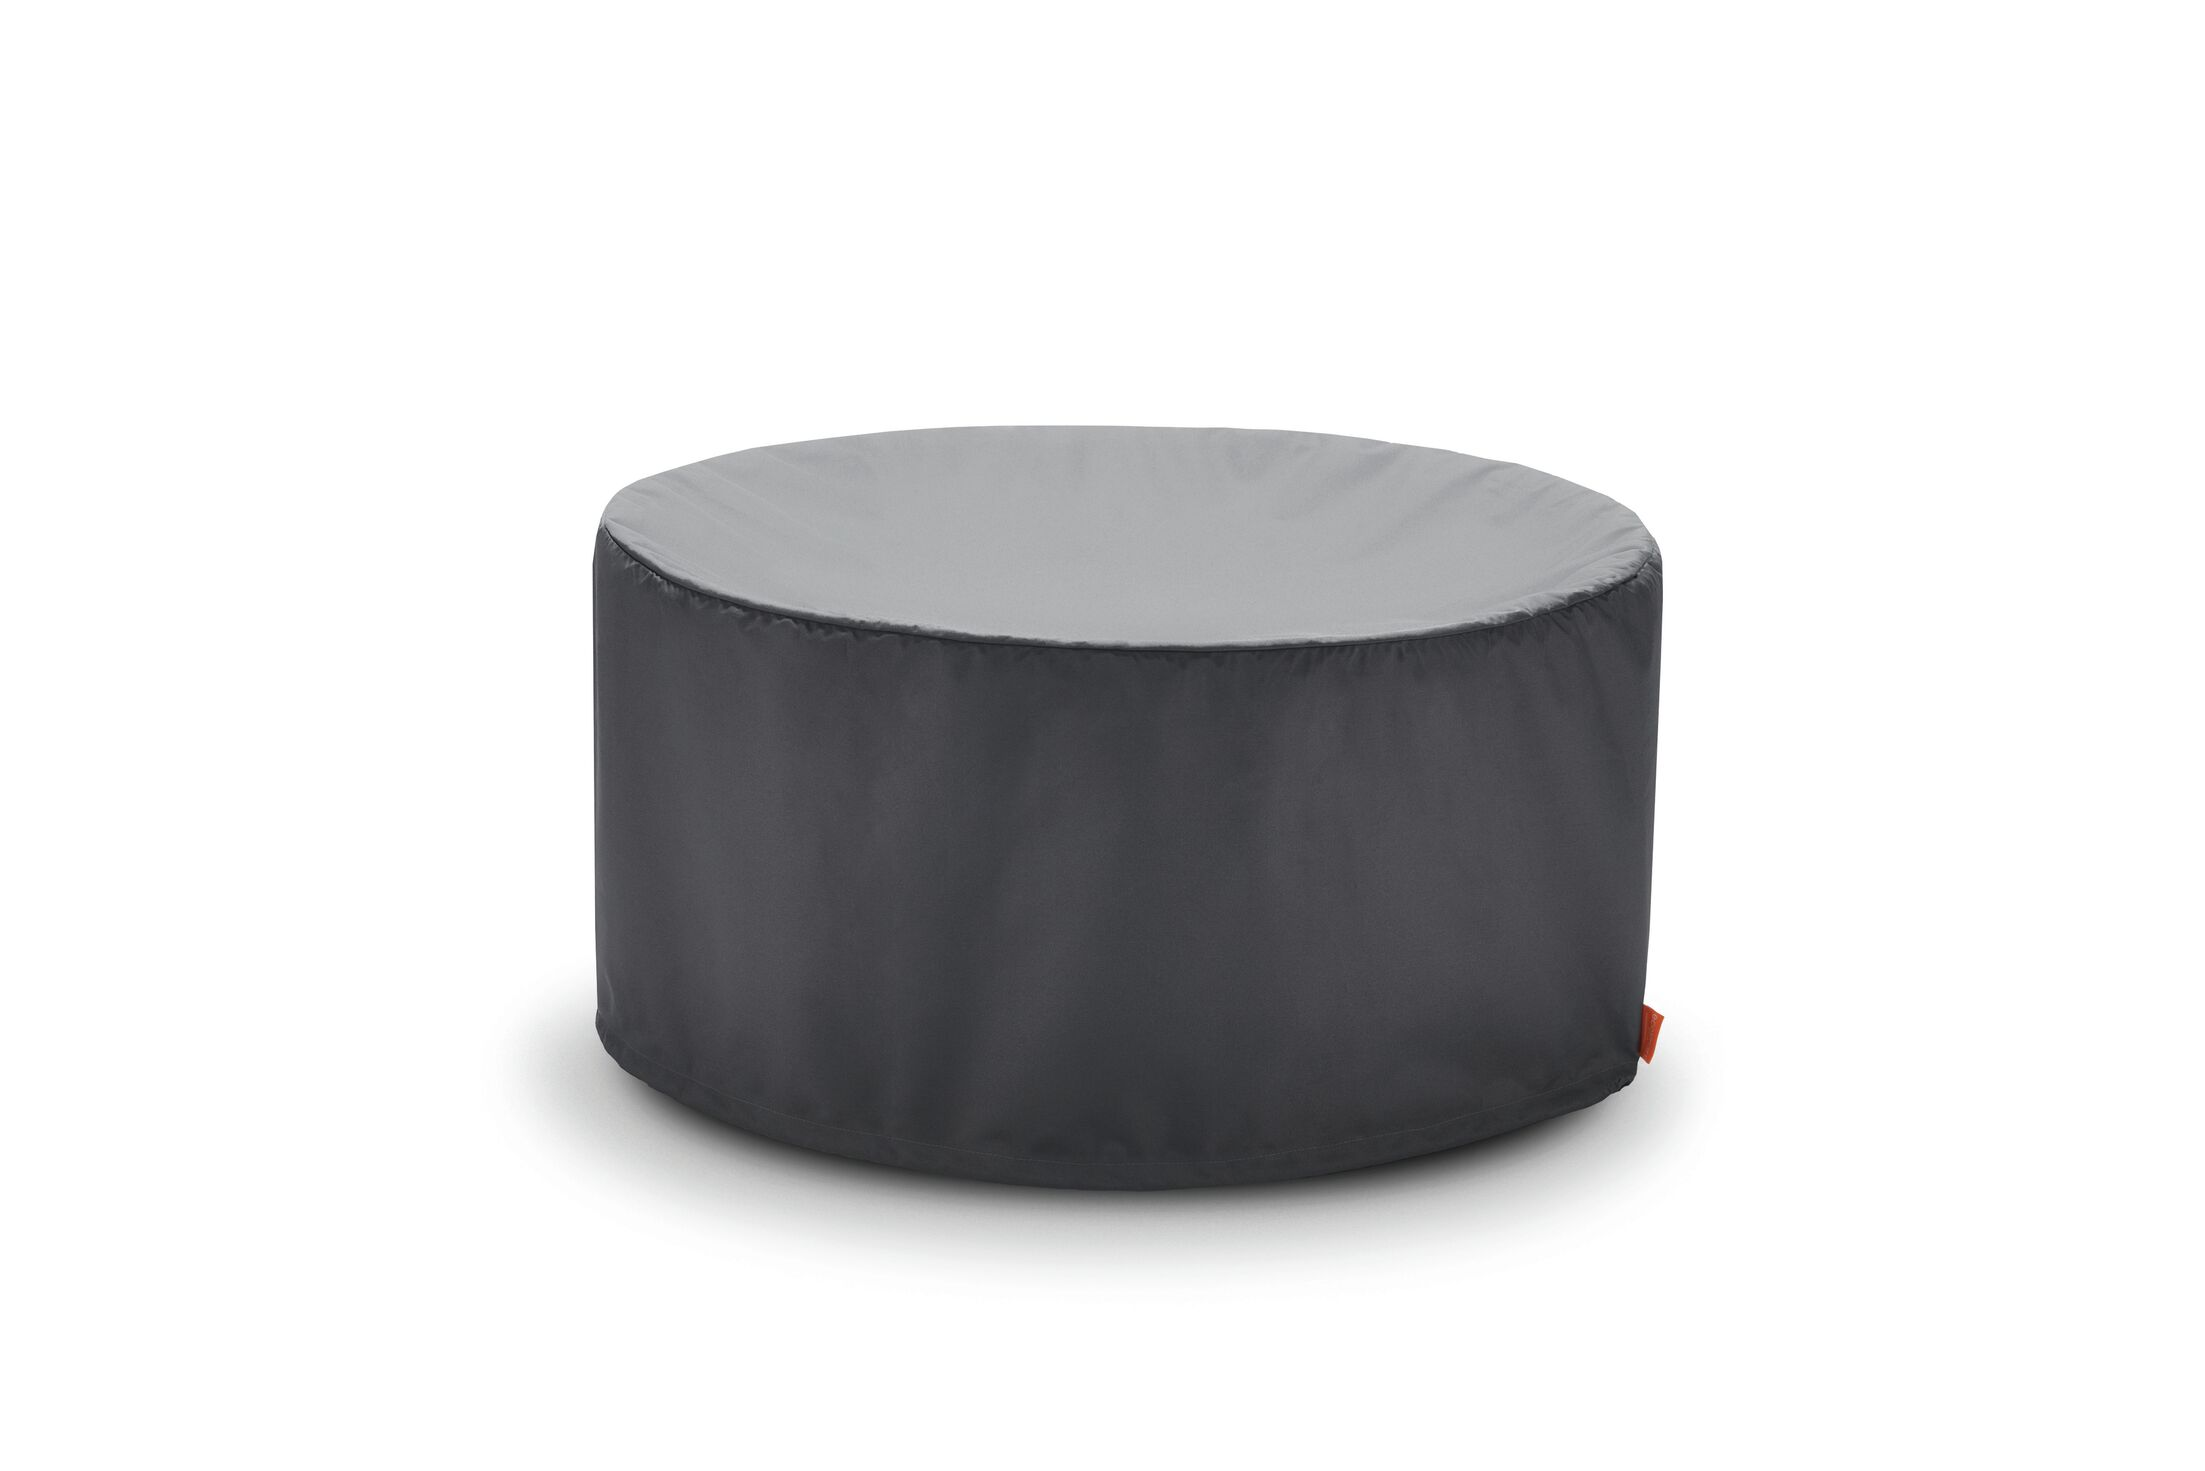 Pod Outdoor Fire Pit Cover Size: 12.6